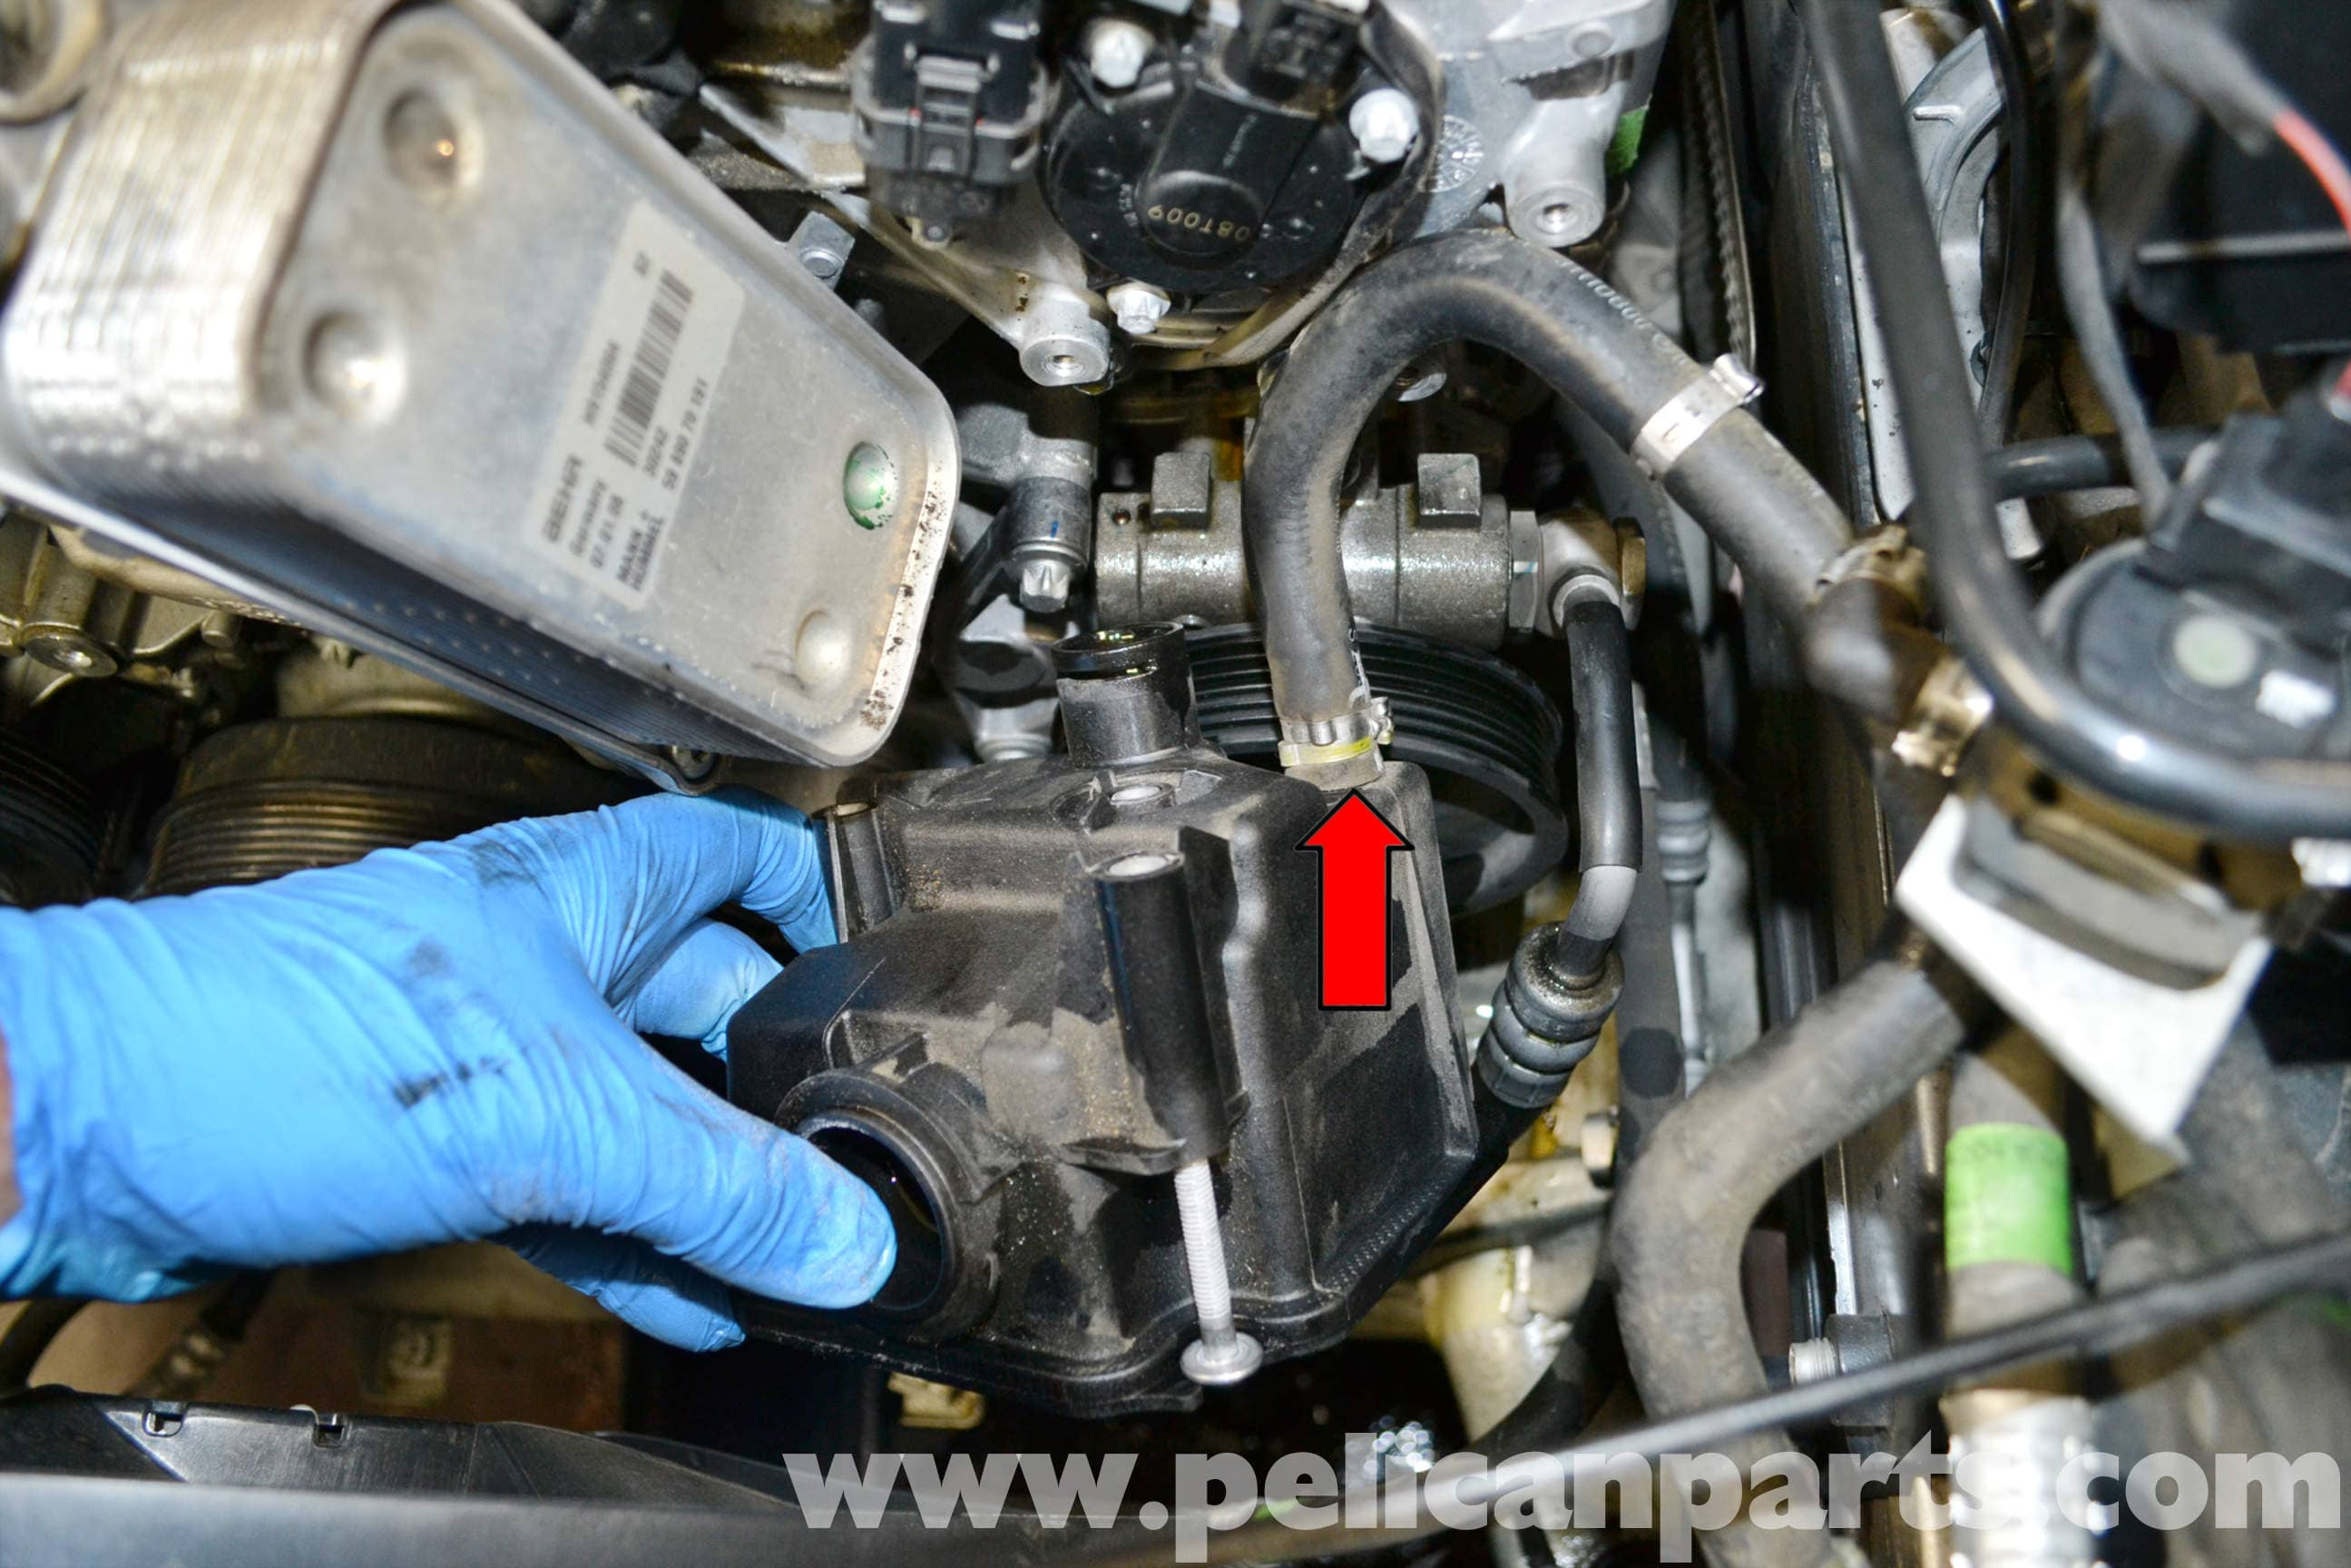 Mercedes-Benz W204 Power Steering Reservoir Replacement - (2008-2014